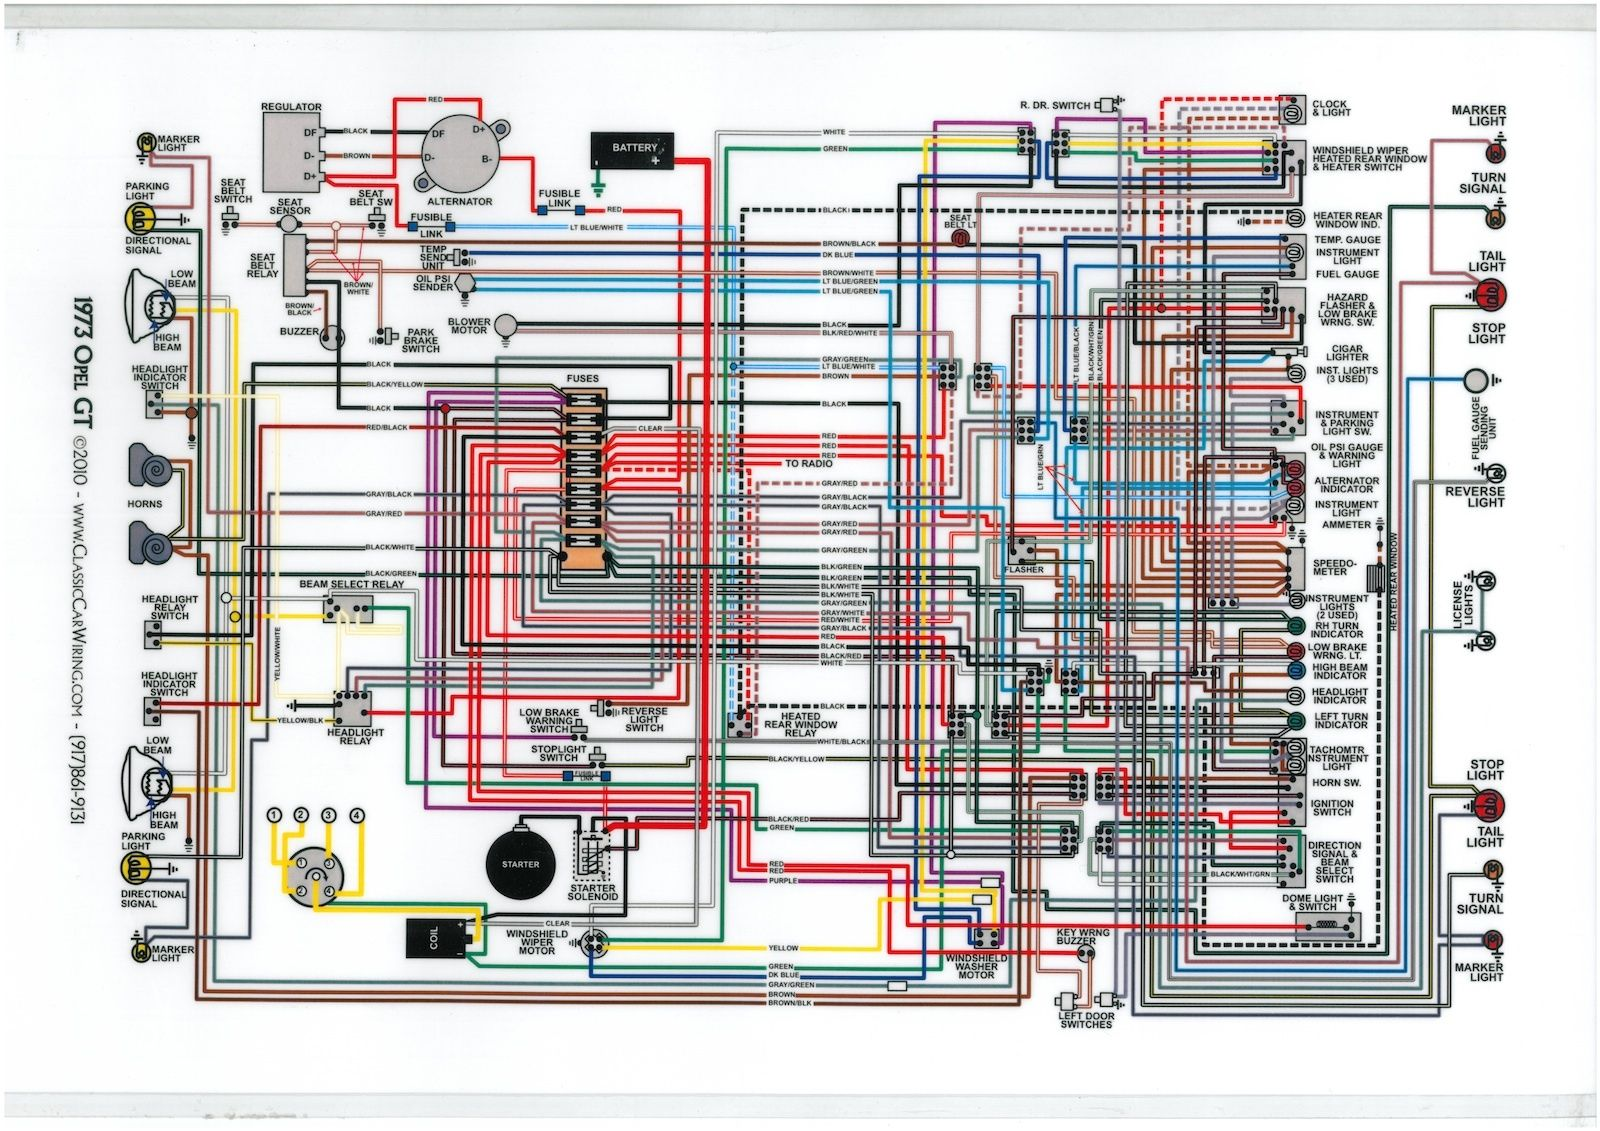 opel gt fuse box wiring diagram previewopel gt wiring diagram wiring diagram options opel gt fuse [ 1600 x 1131 Pixel ]